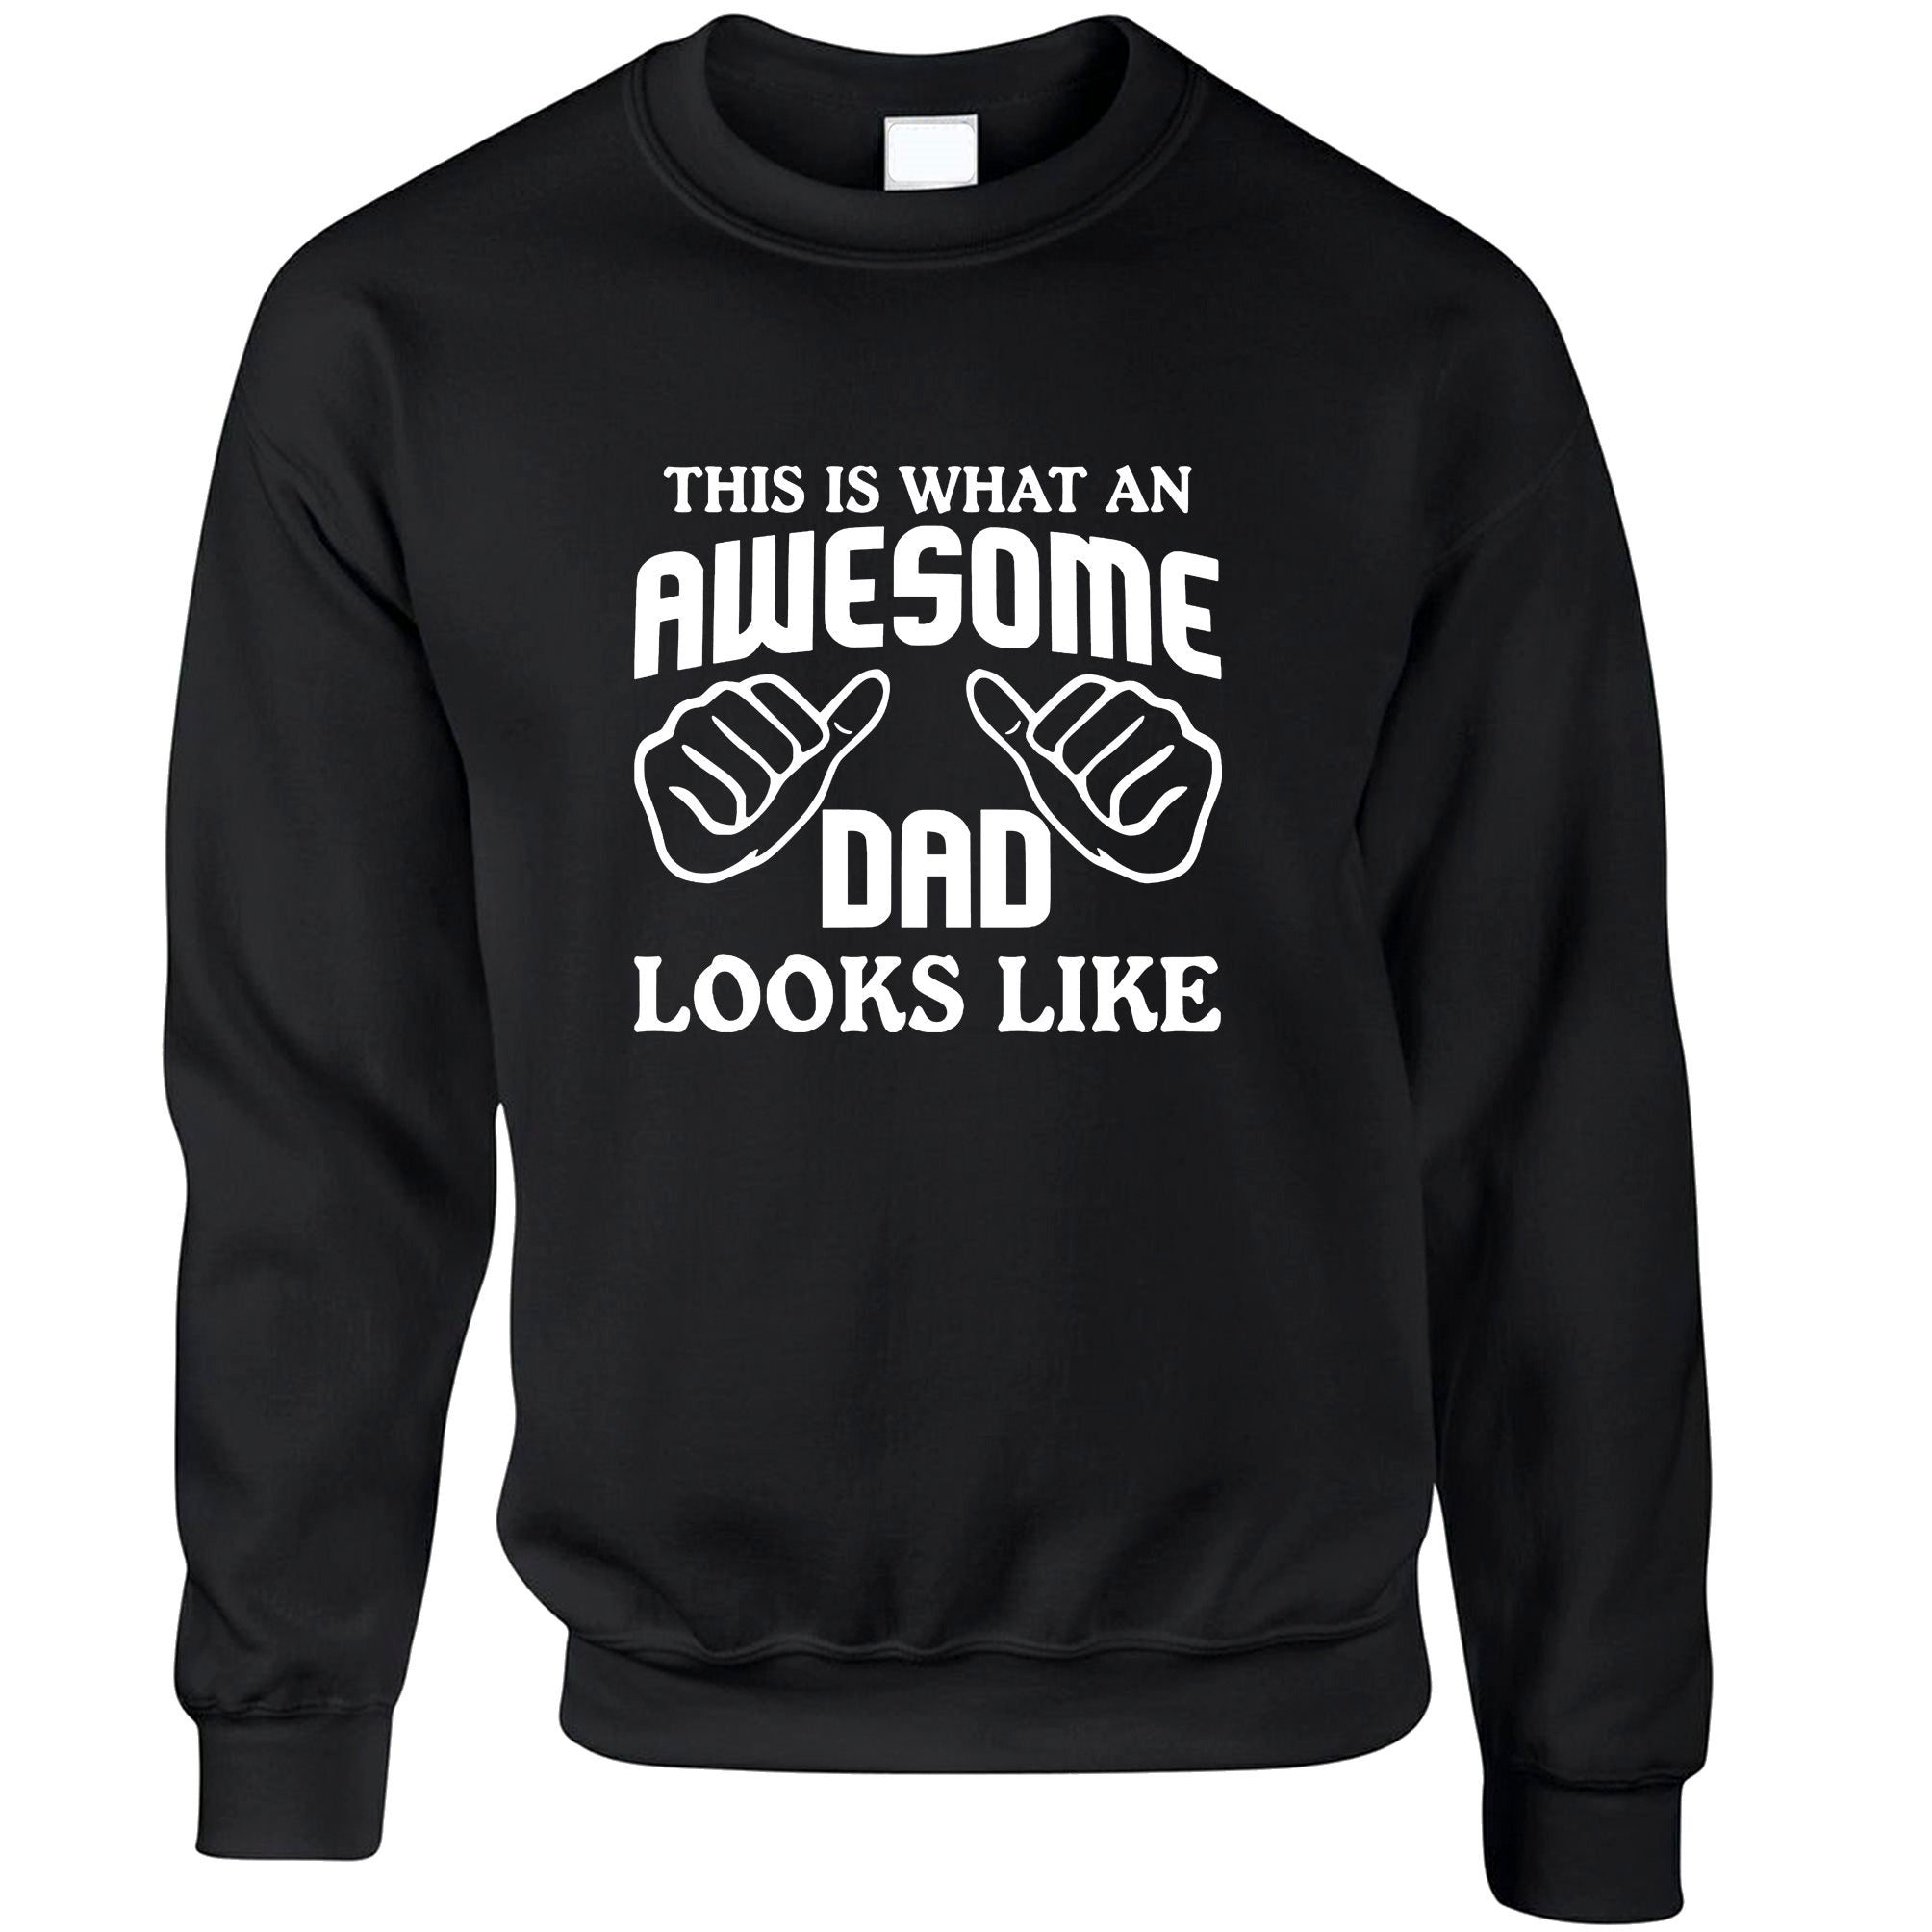 What An Awesome Dad Looks Like Jumper Sweatshirt Sweater